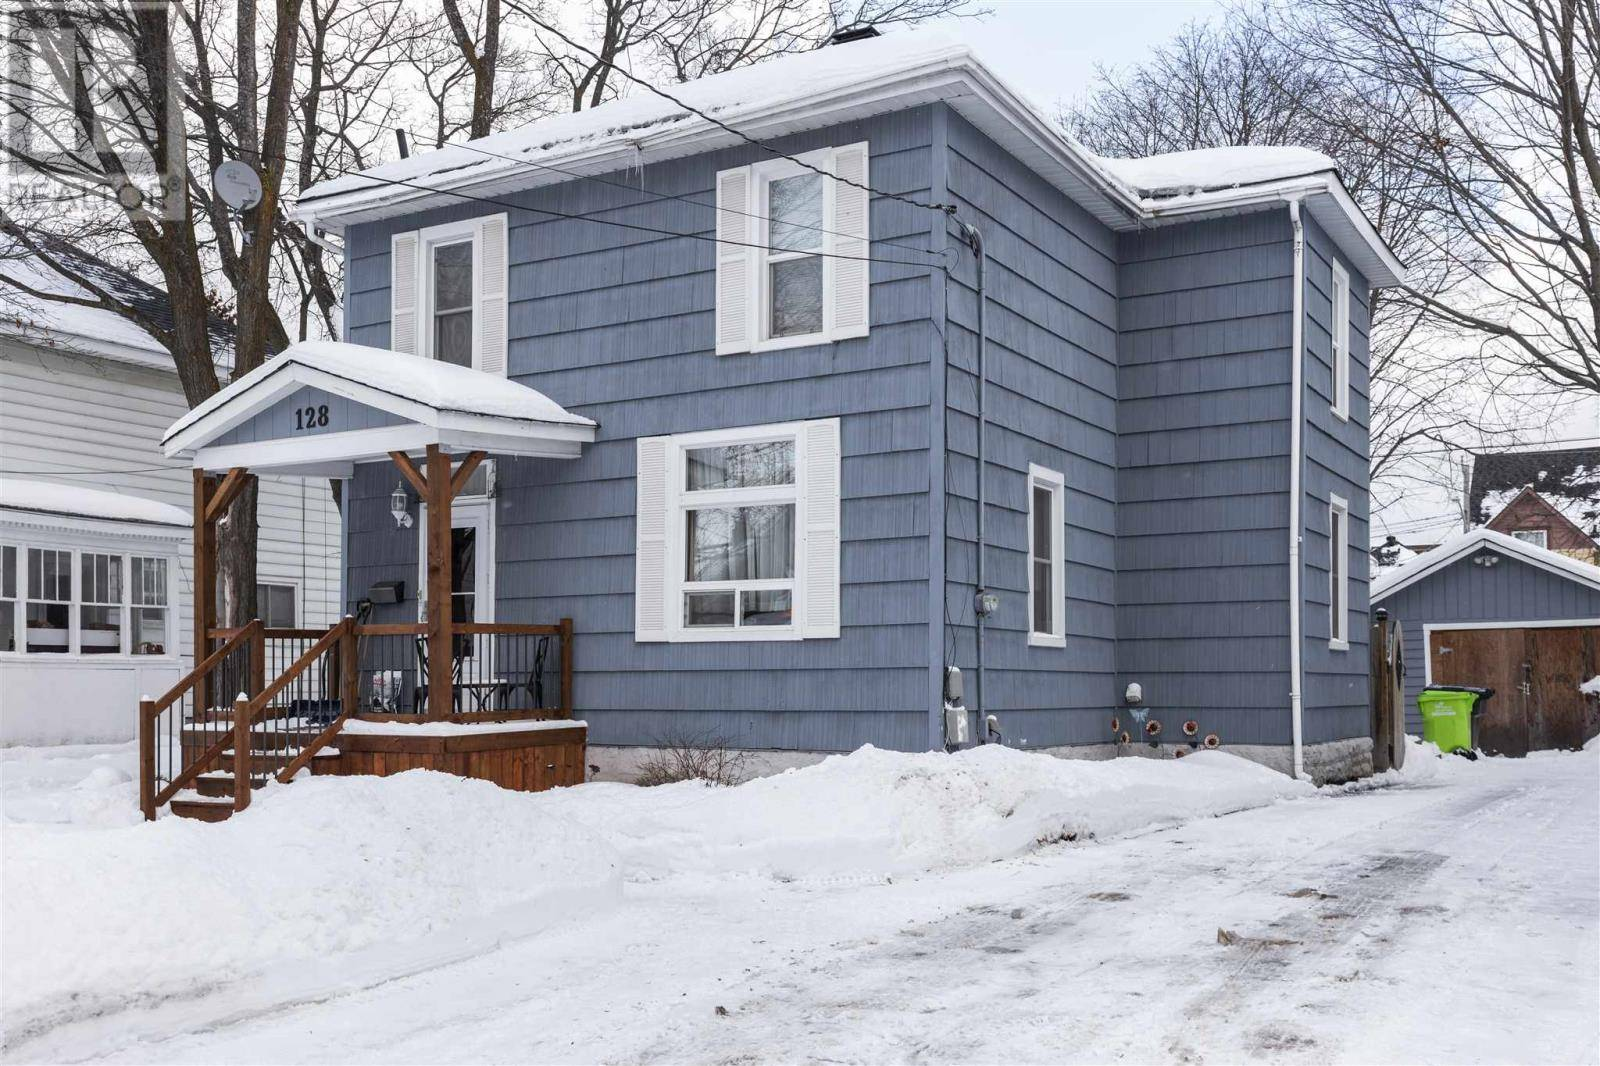 House for sale at 128 Woodward Ave Sault Ste. Marie Ontario - MLS: SM127698